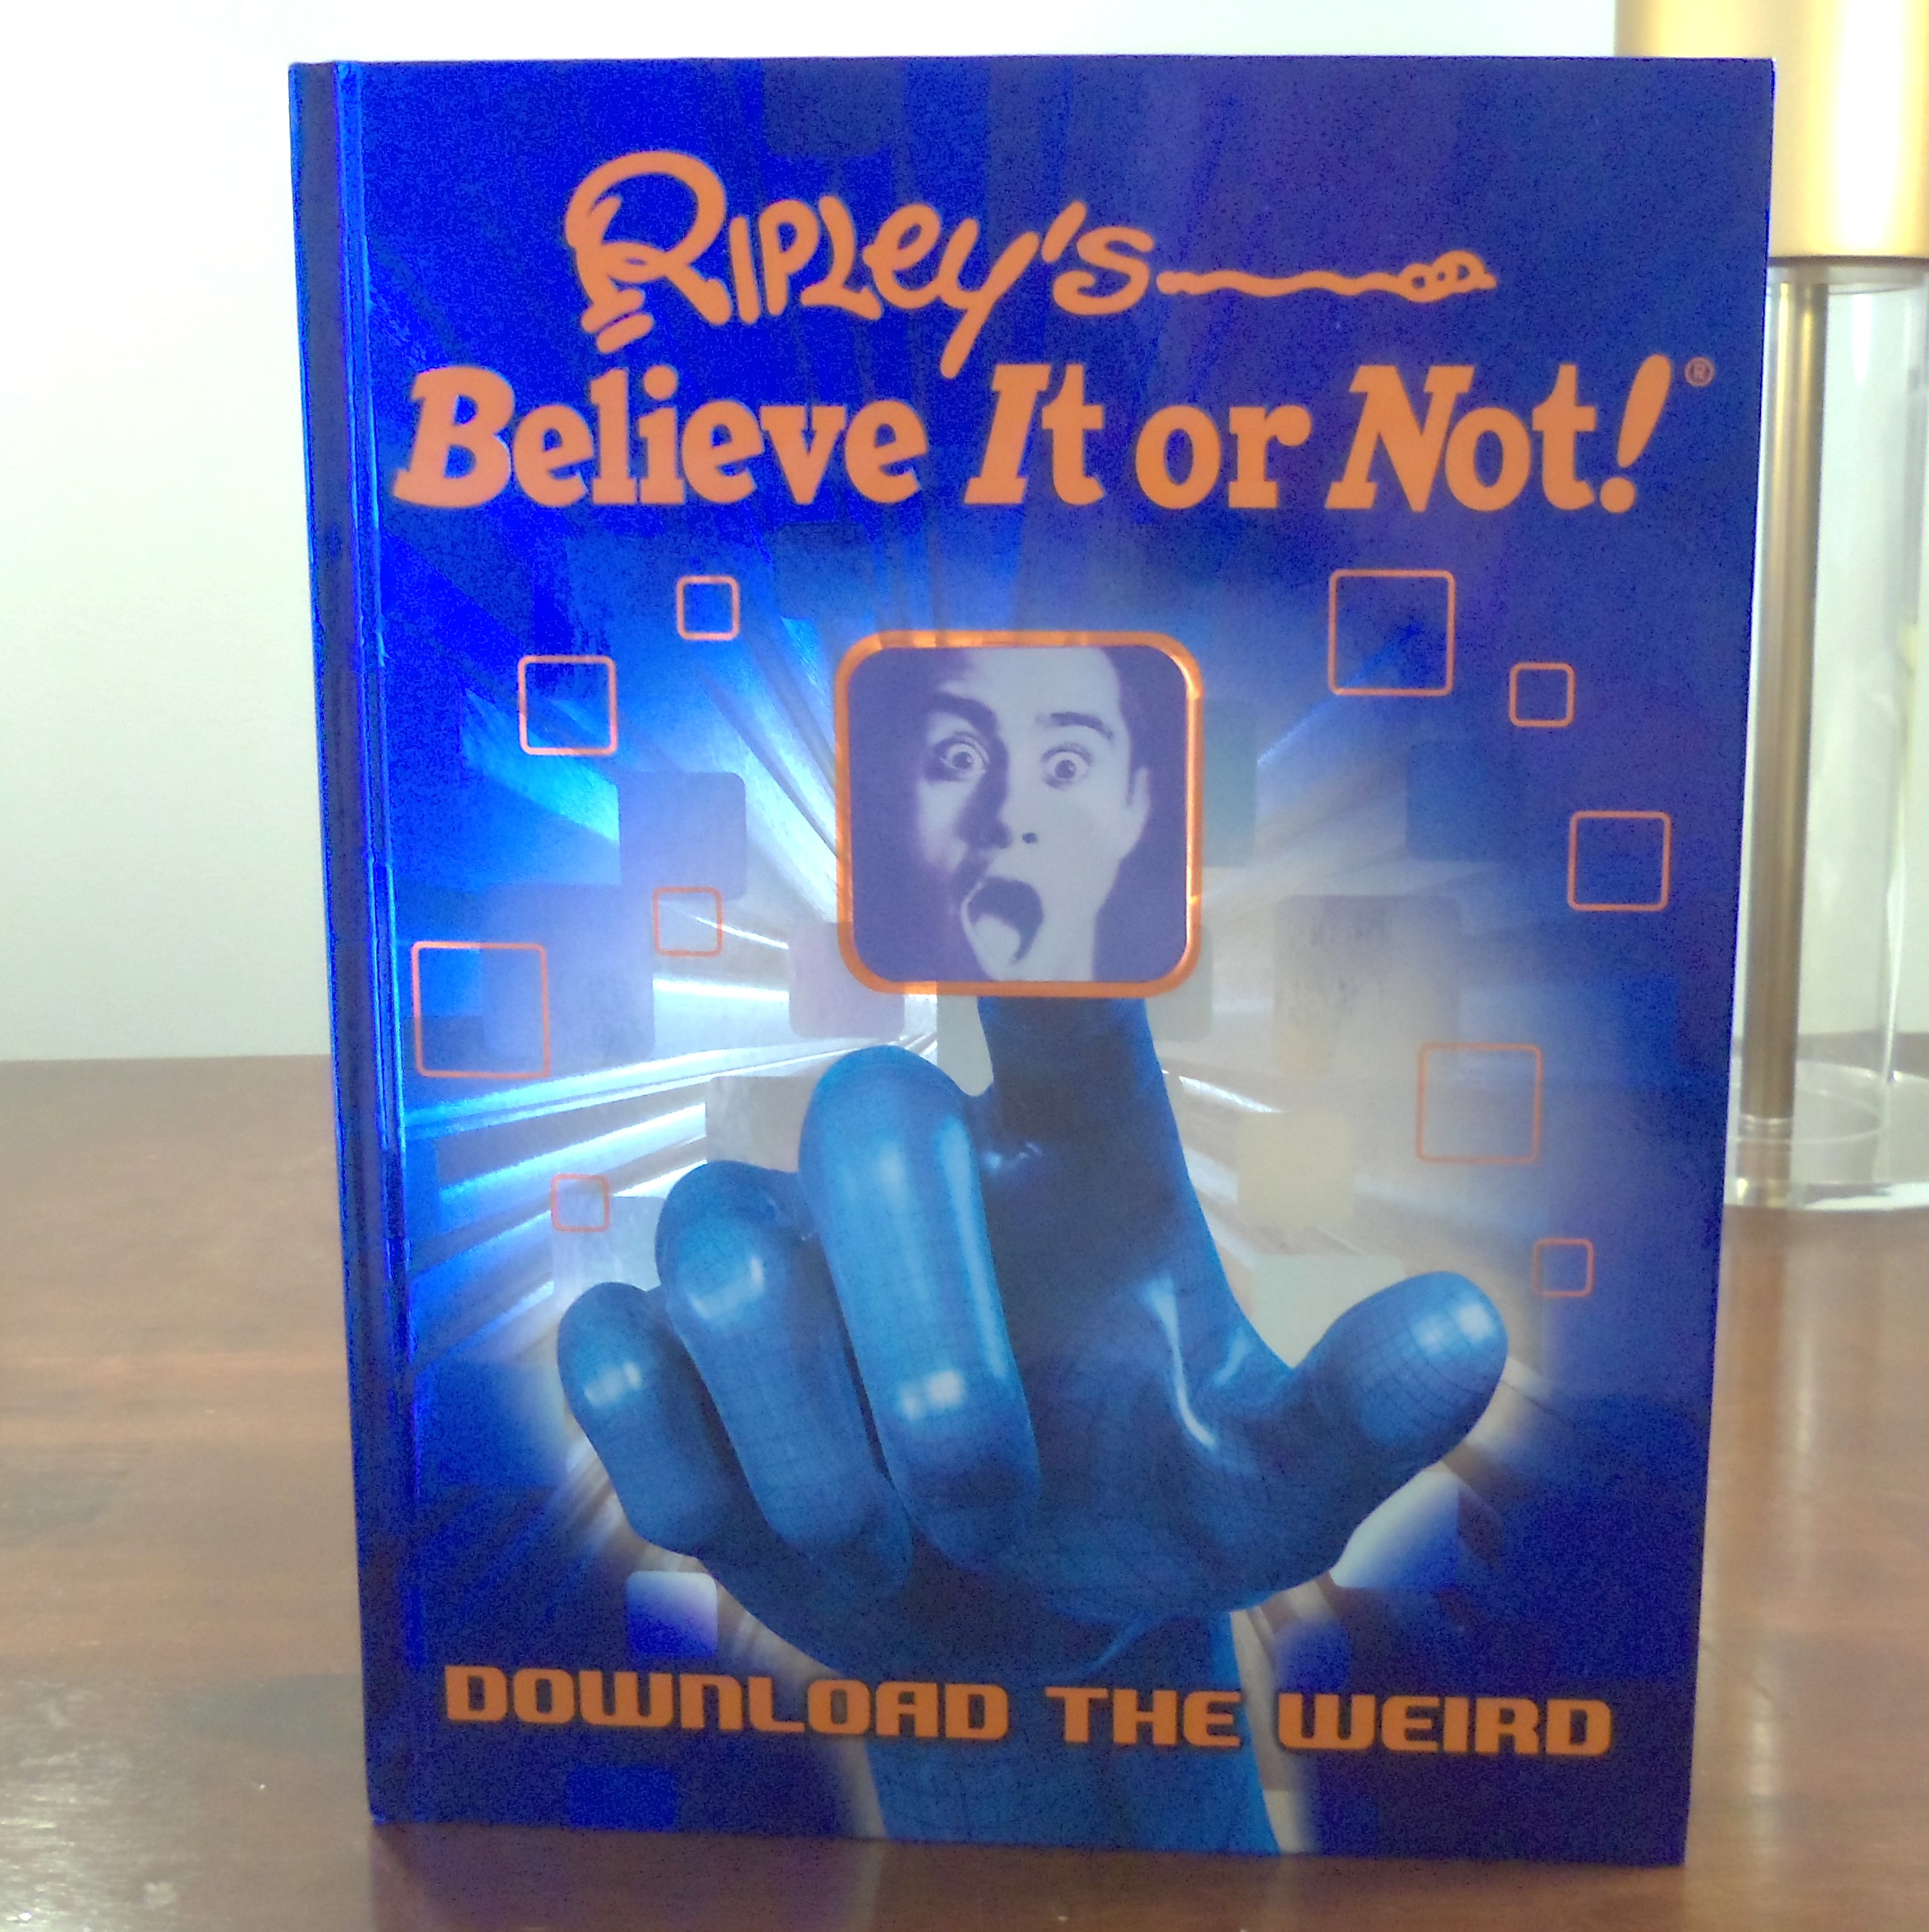 Ripley's Believe It Or Not Download the Weird Book